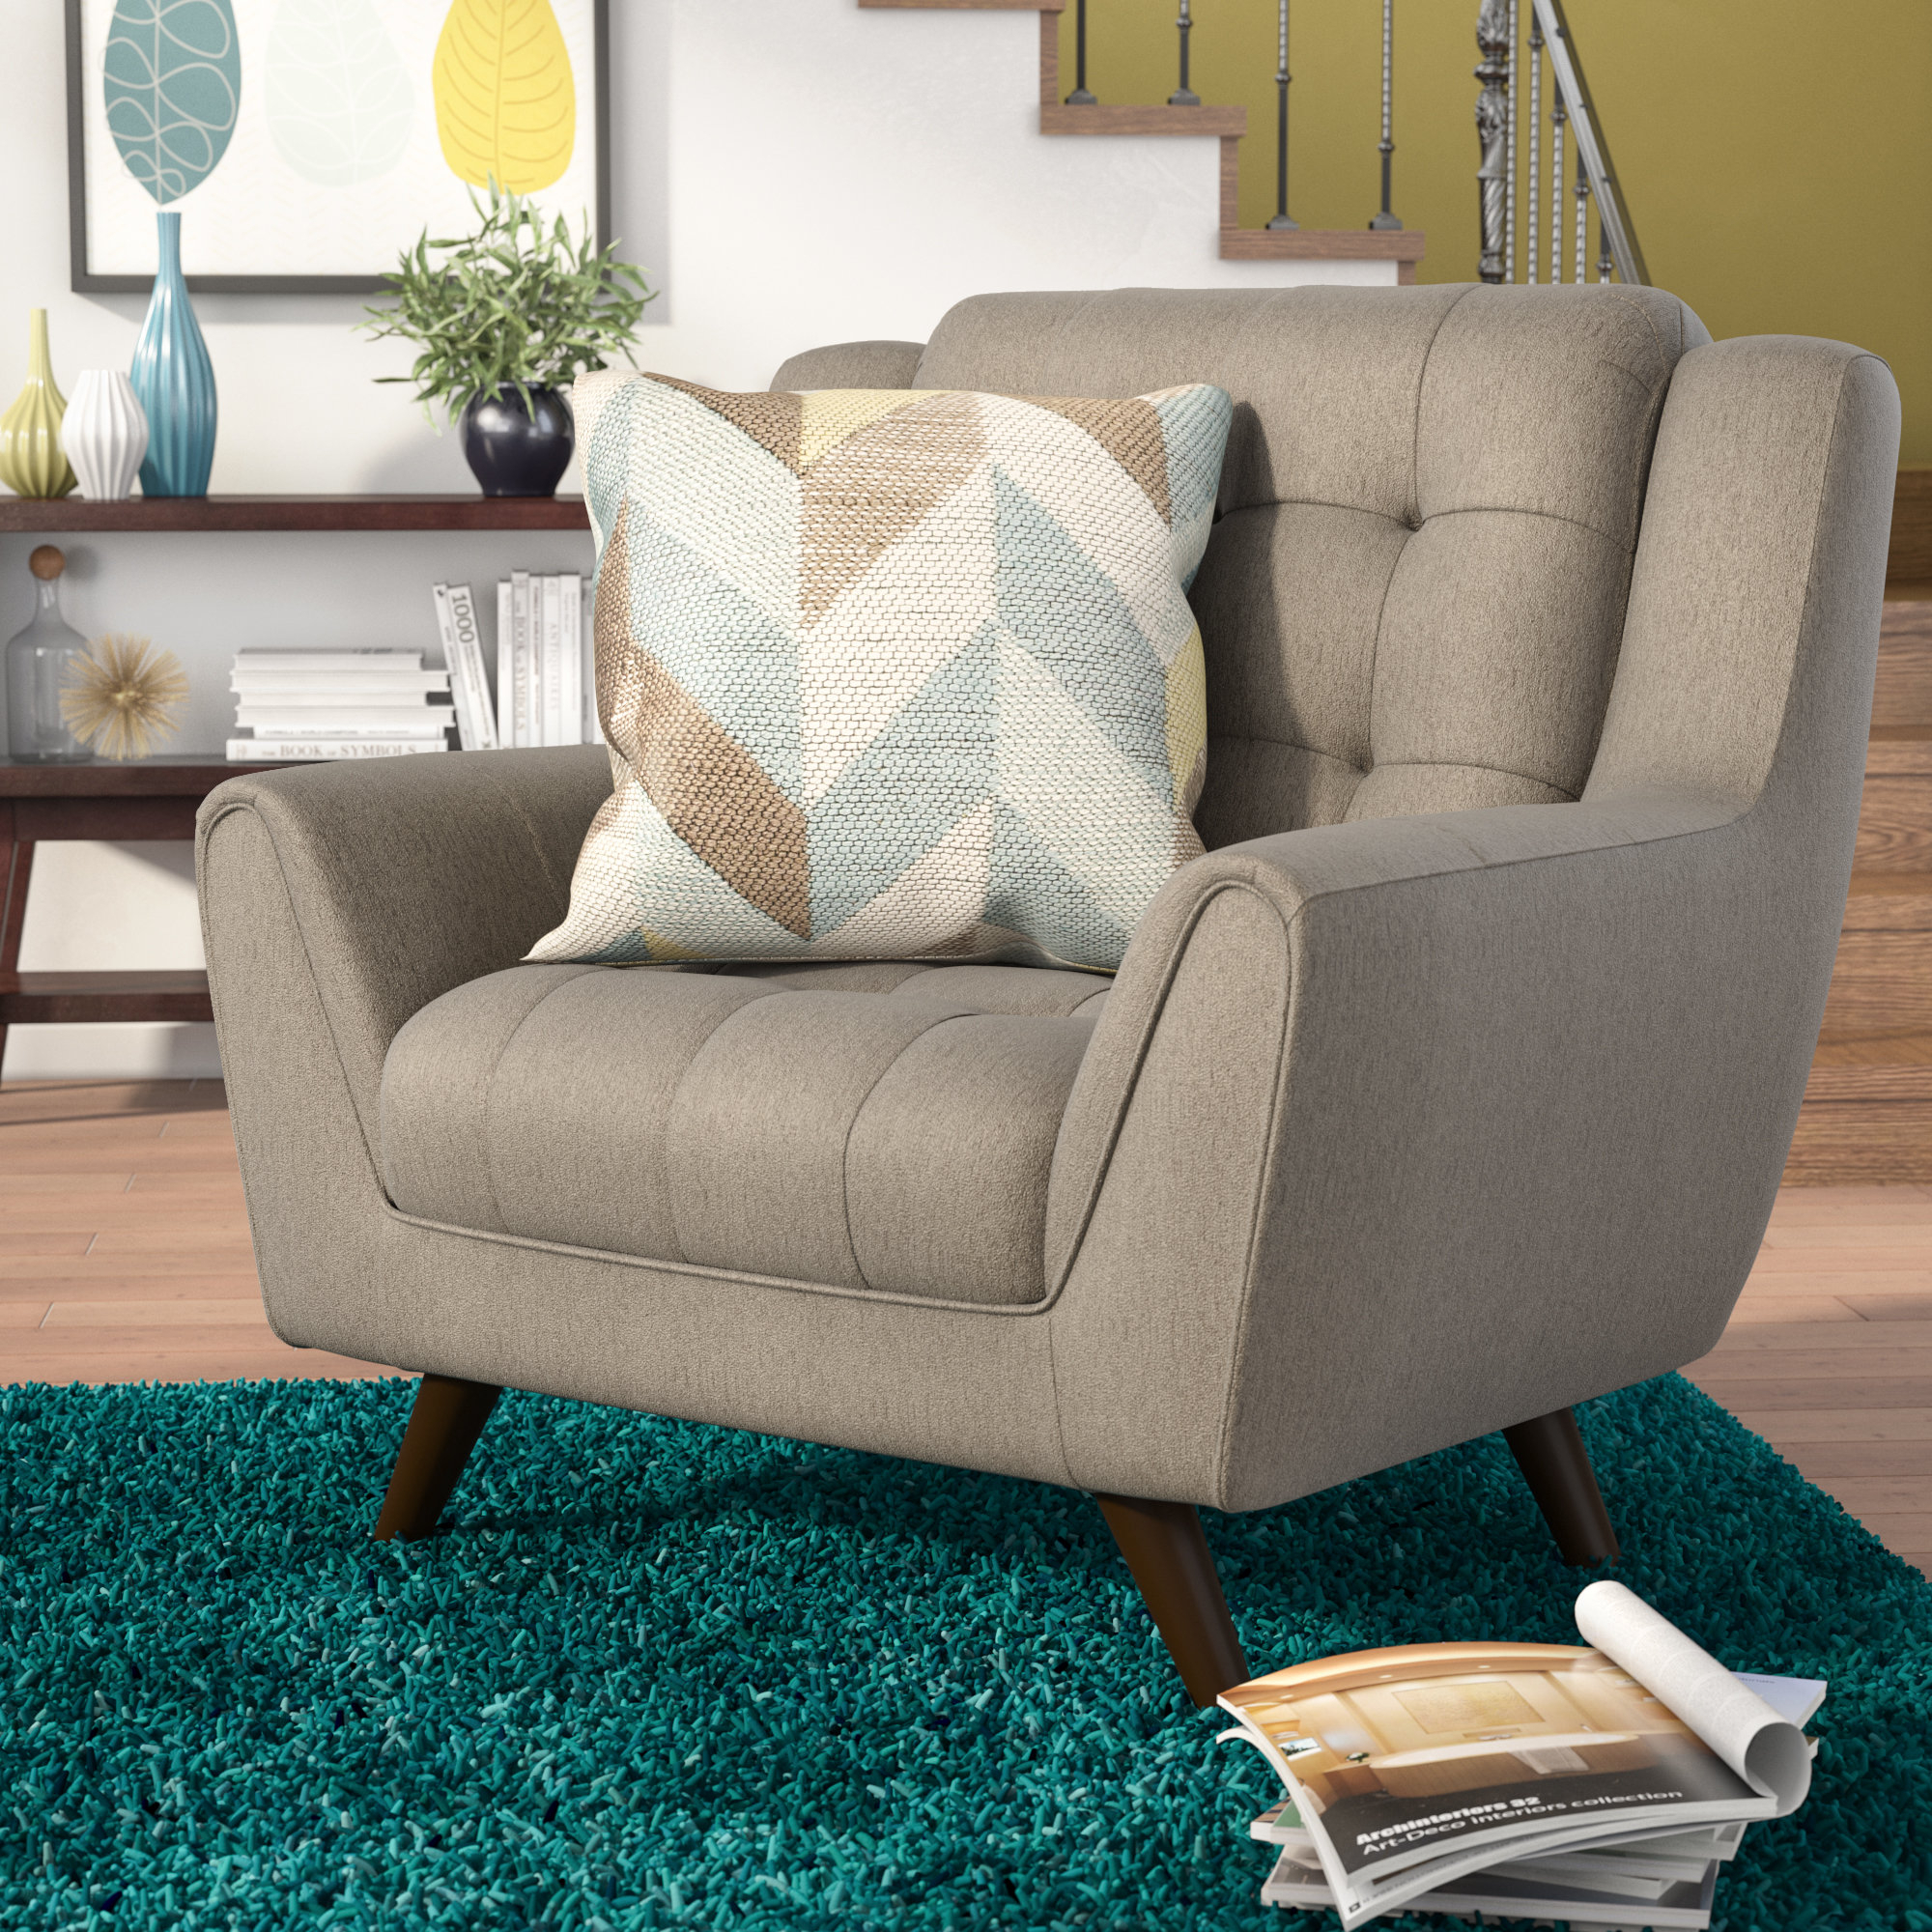 Langley Street Alvinholmes Chair And A Half & Reviews | Wayfair With Regard To Escondido Sofa Chairs (Image 12 of 20)